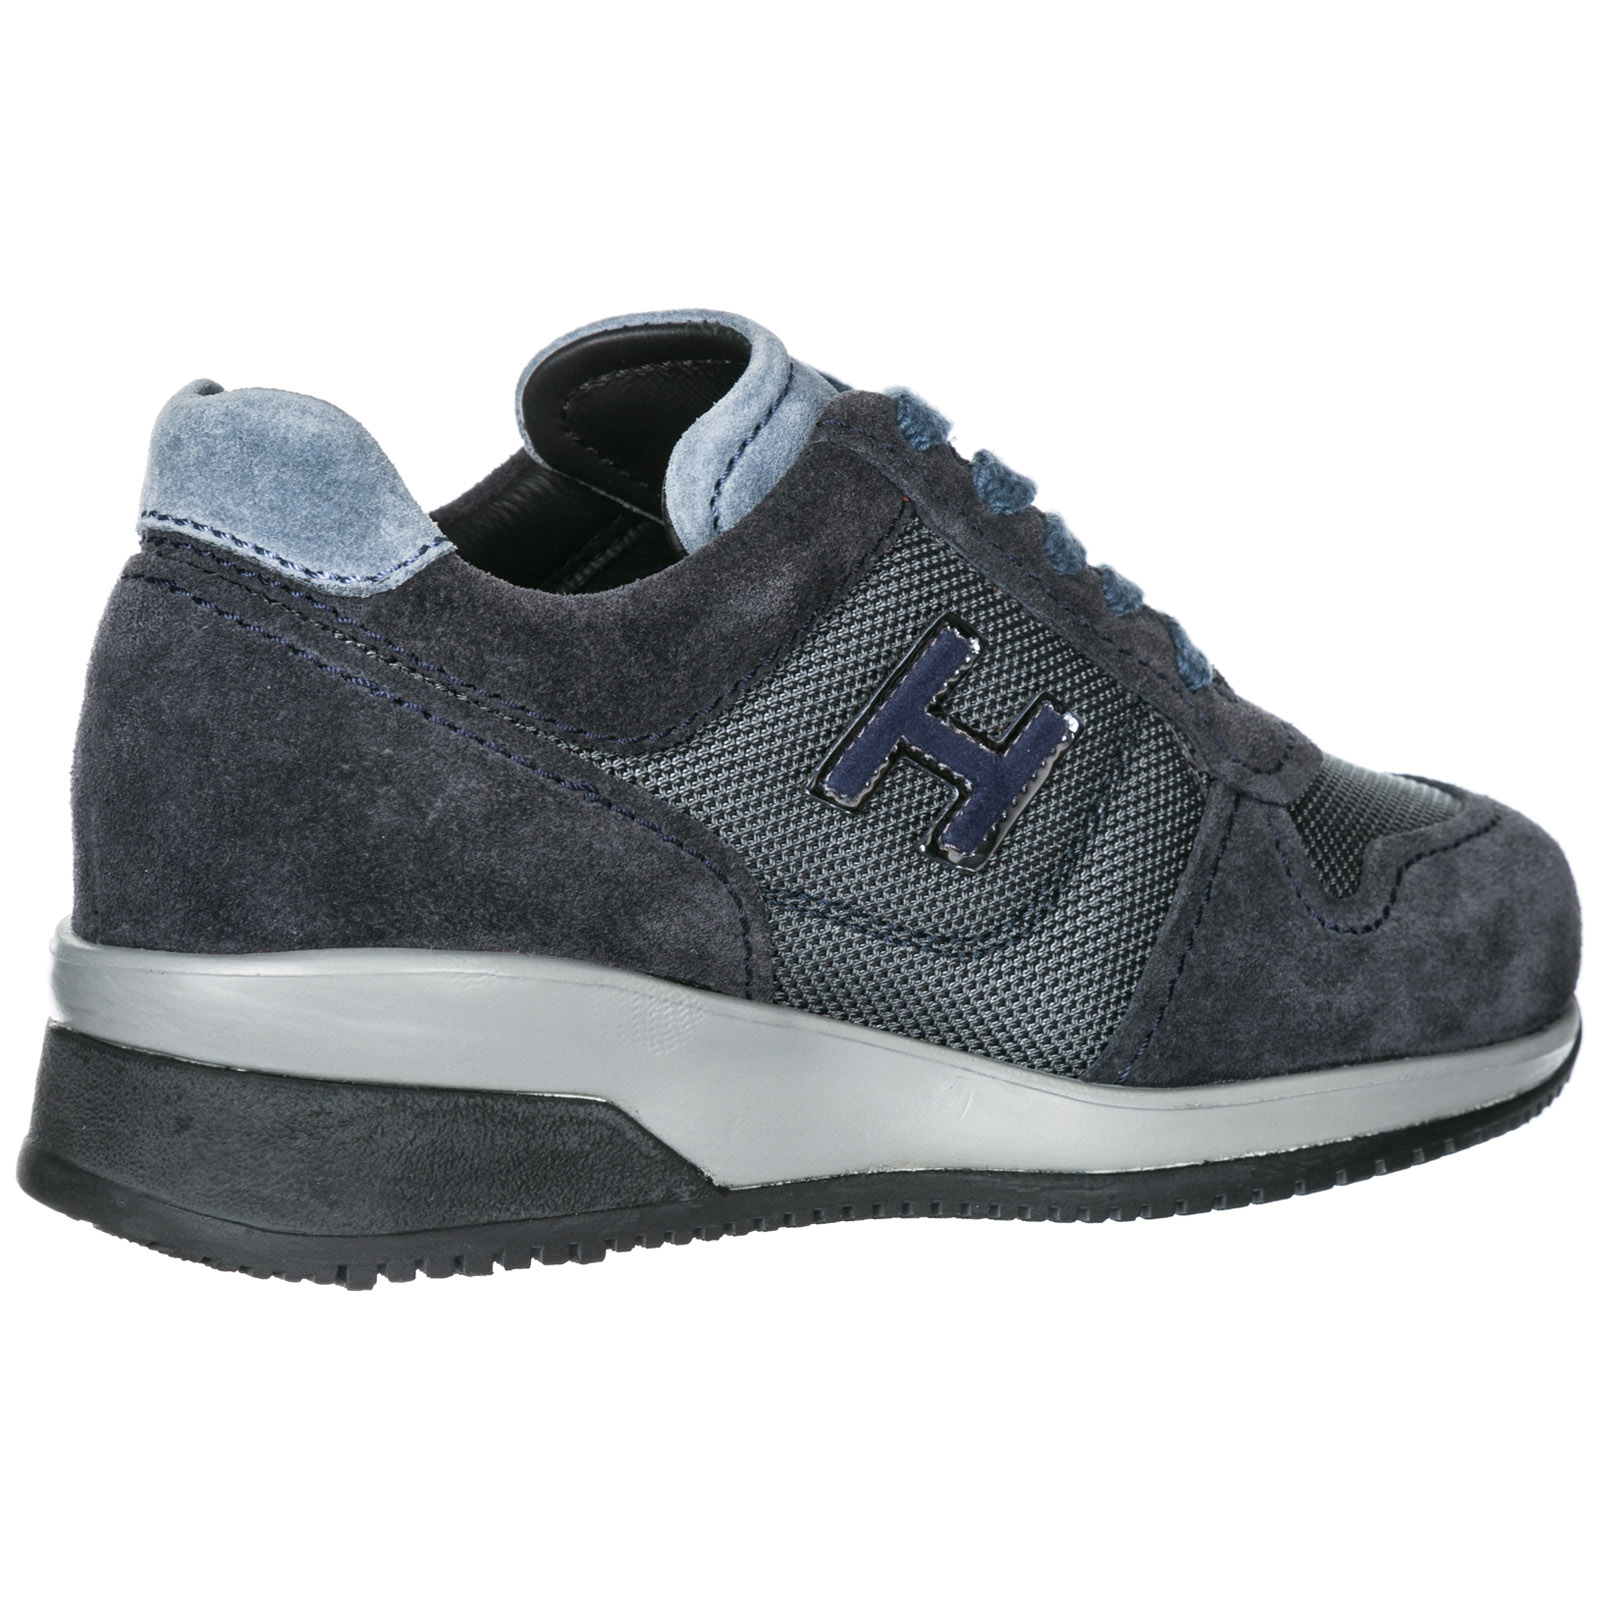 Boys shoes child sneakers suede leather elective